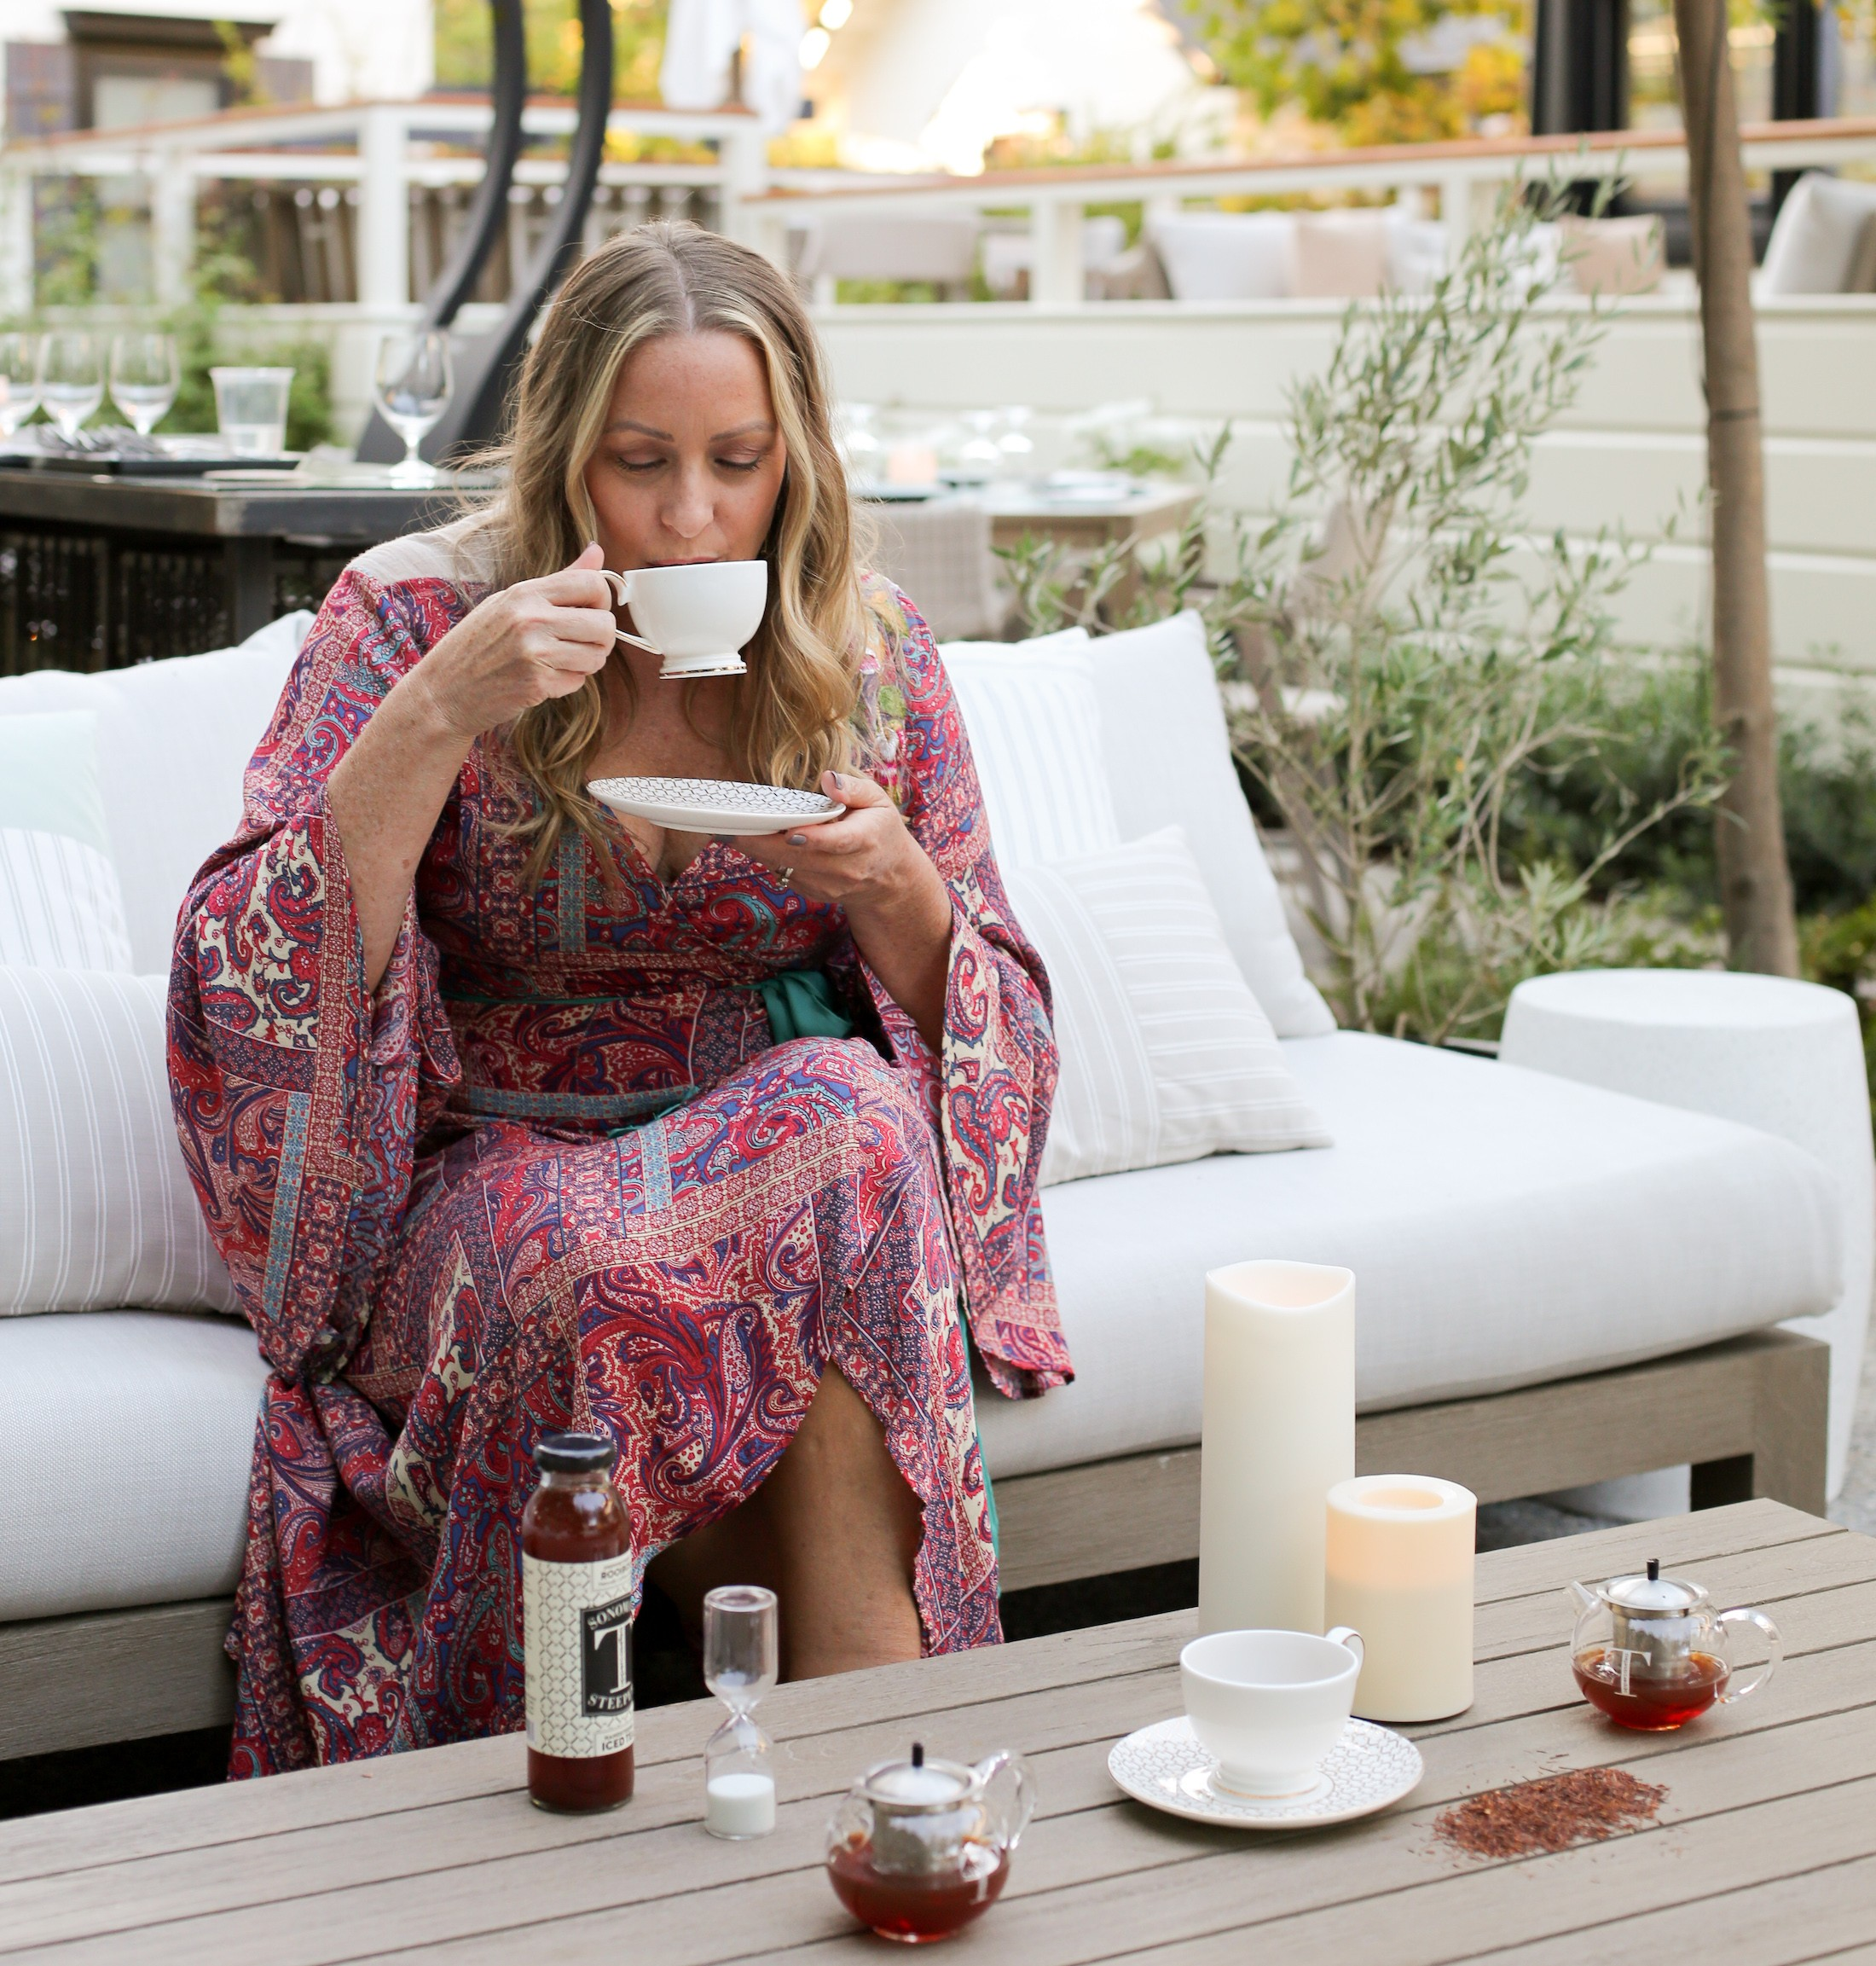 Alison Kilmer, founder of UppercaseTea shares her perfect Autumn day in Sonoma